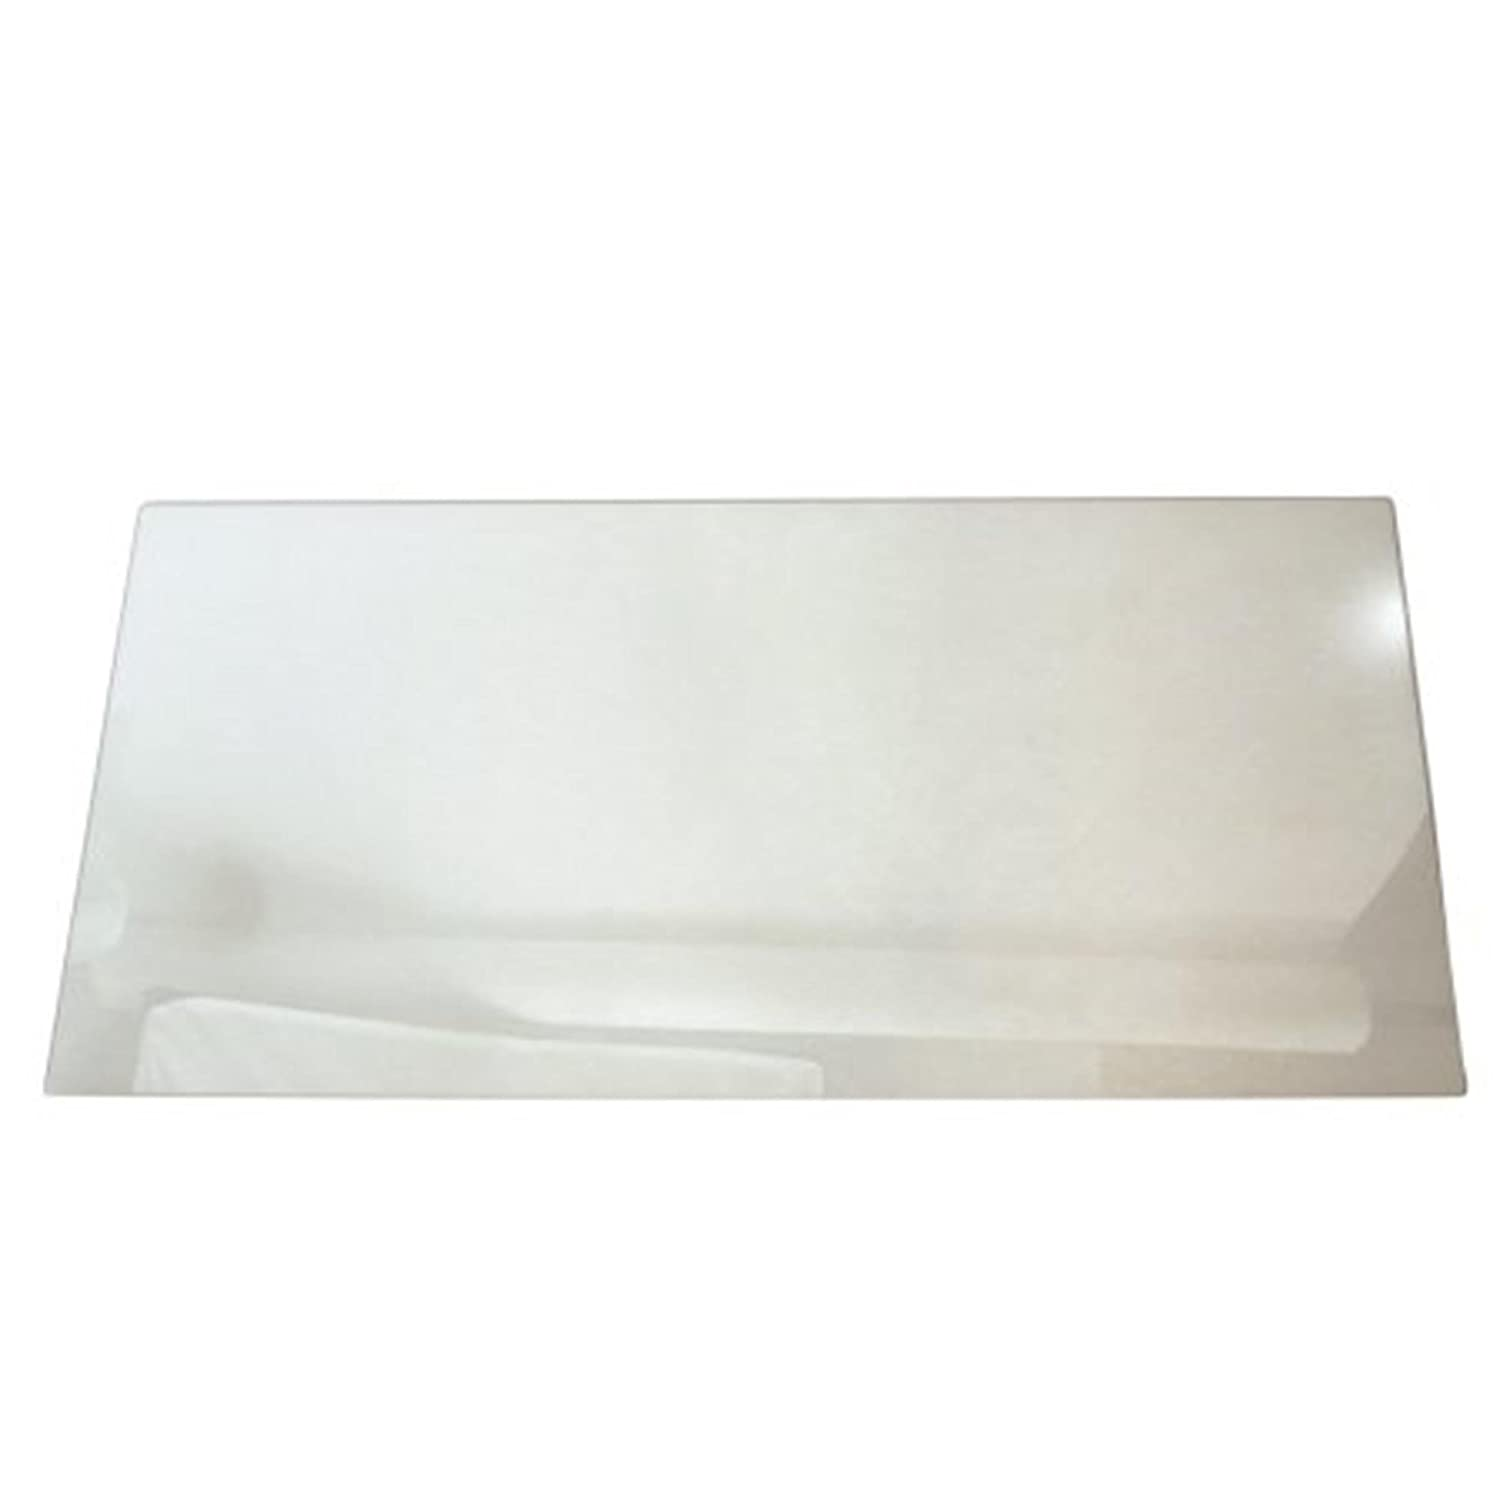 LG MHL62931401 Shelf, Glass